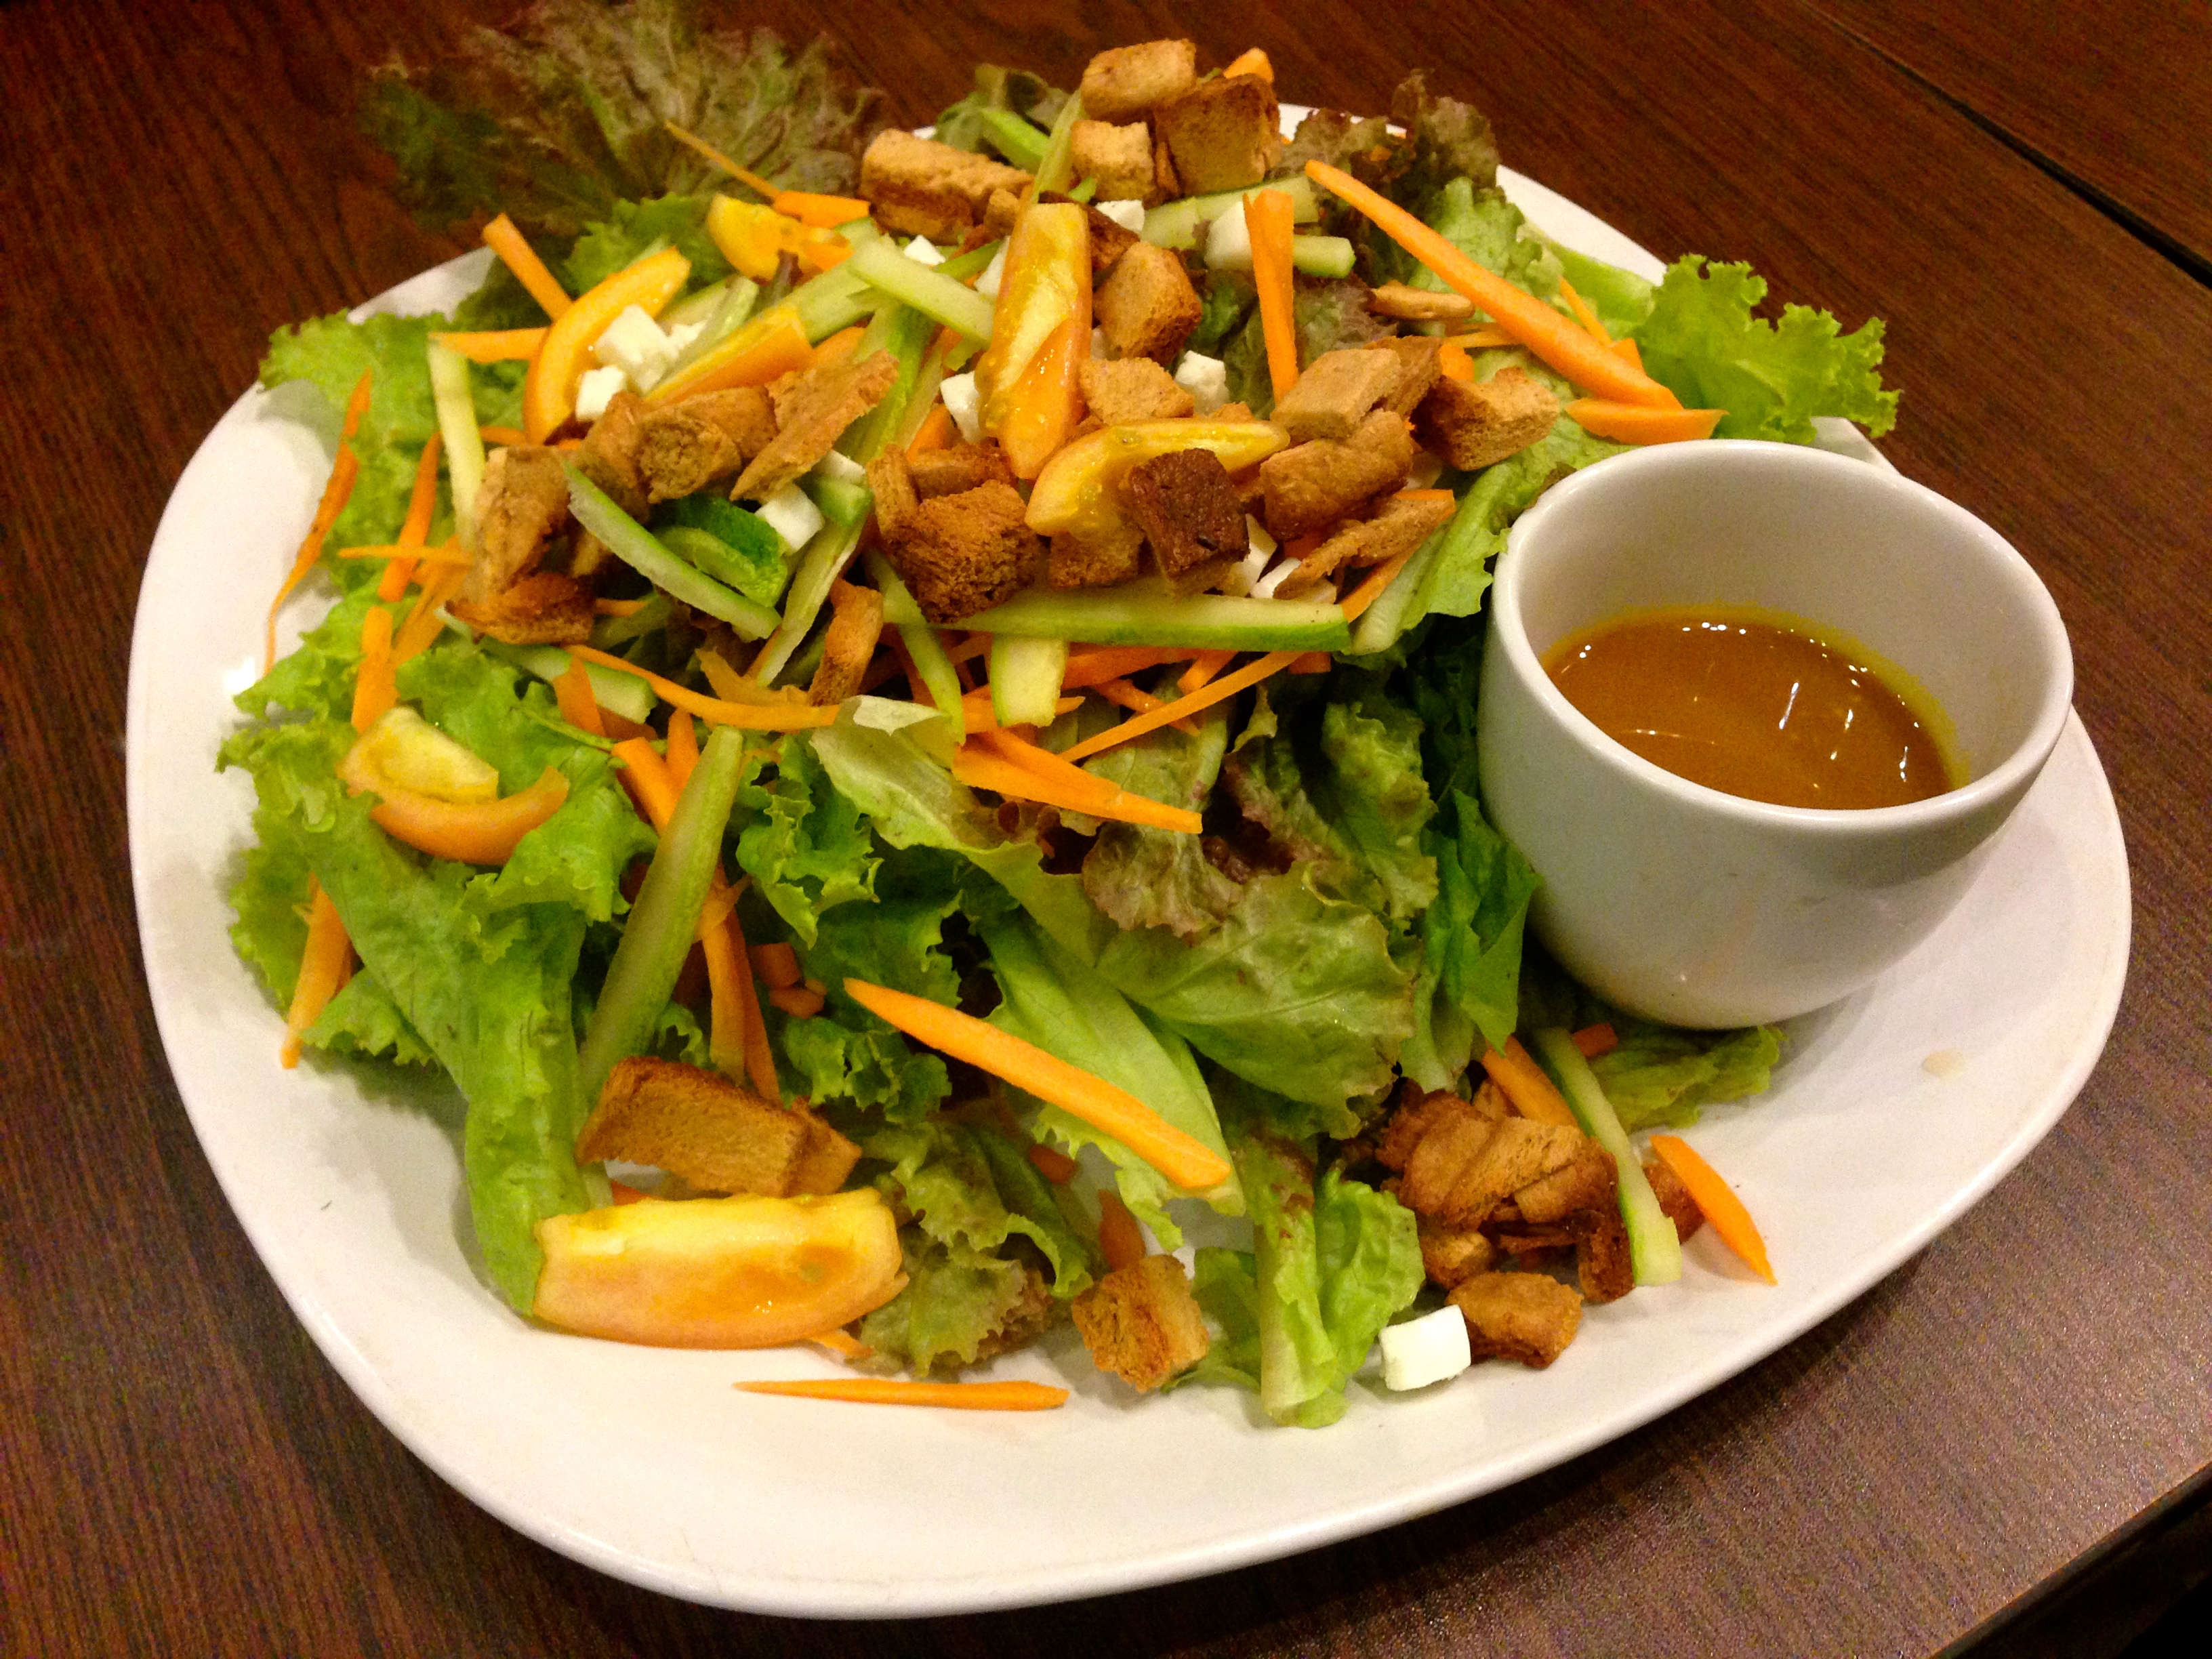 Upon arrival, we were greeted by Fresh Start Organic Cafe, the only certified organic restaurant and cafe in Bacolod with their signature Green Salad